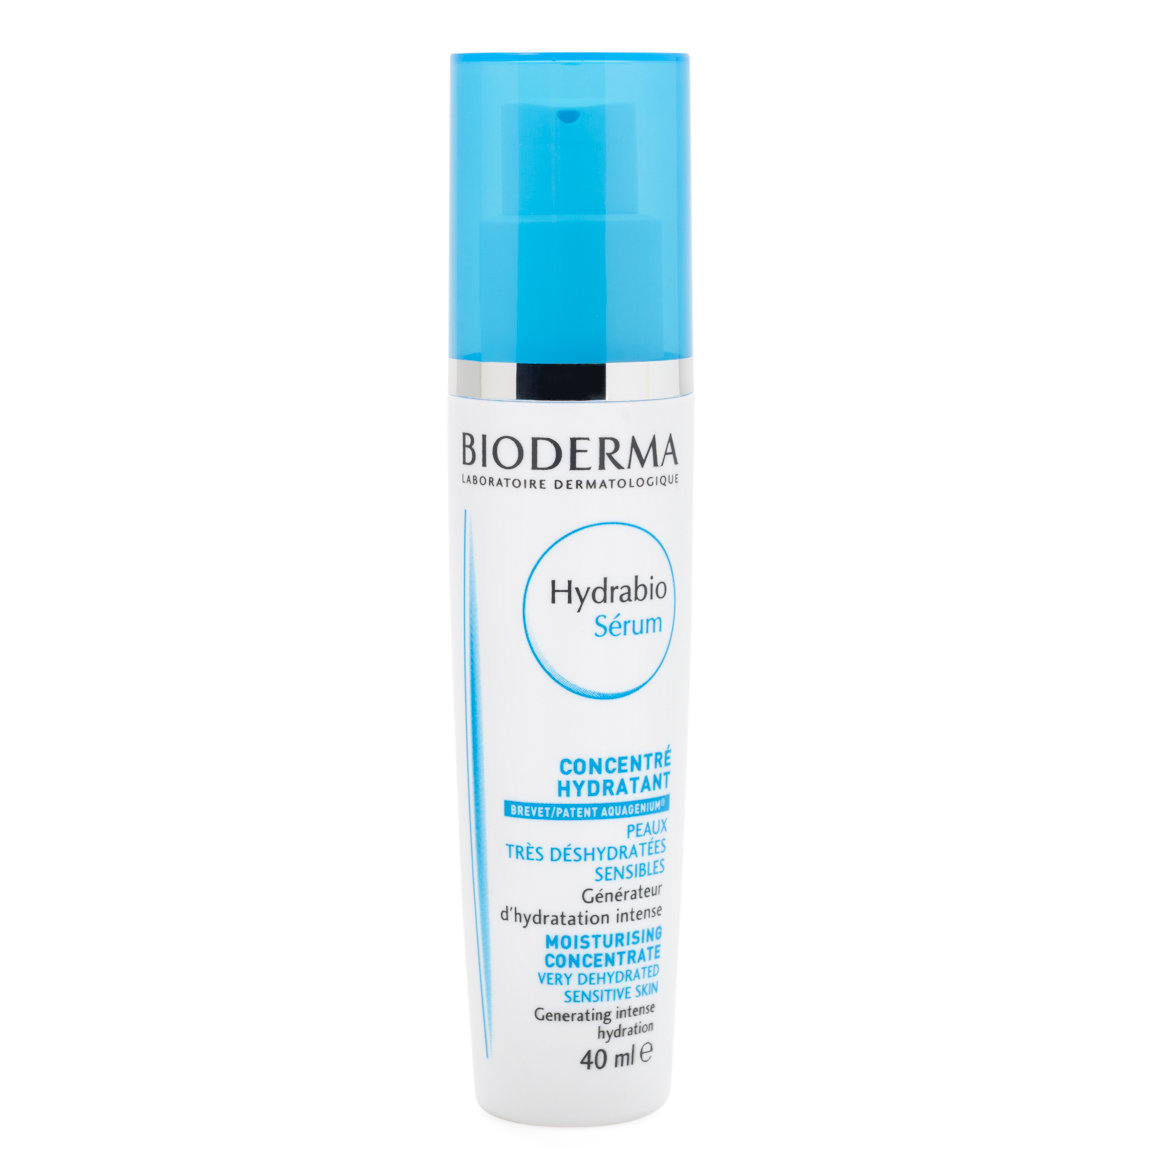 Bioderma Hydrabio Sérum product smear.